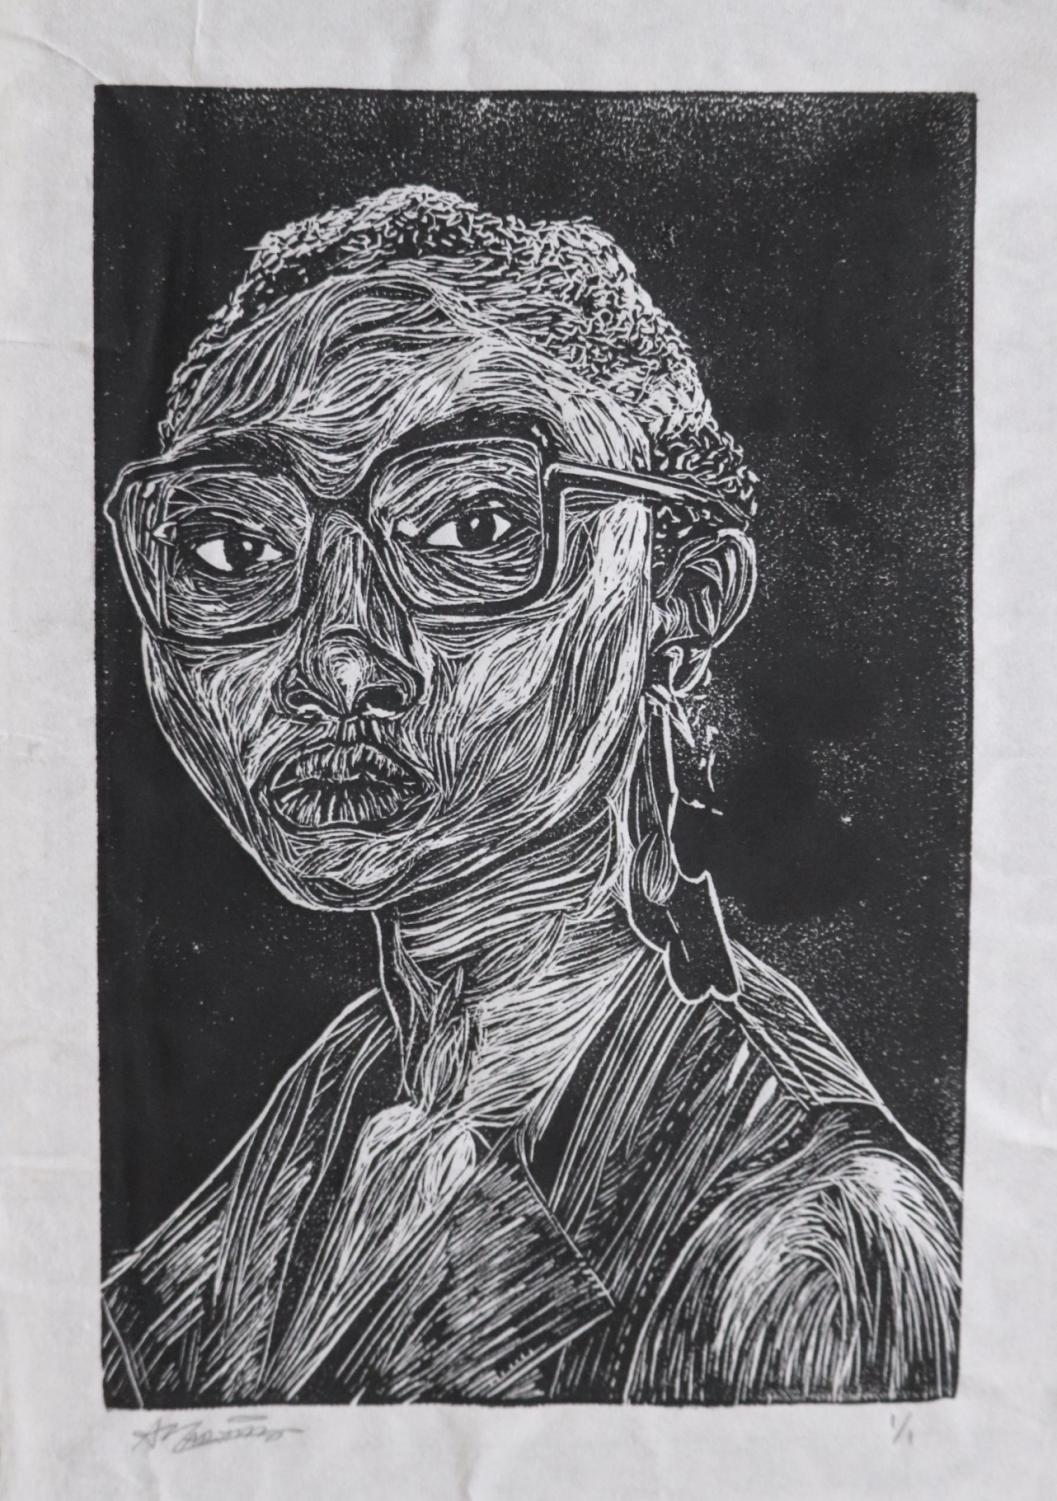 This+scratchboard+piece+was+done+by+senior+Ana+Marie+Martinez.